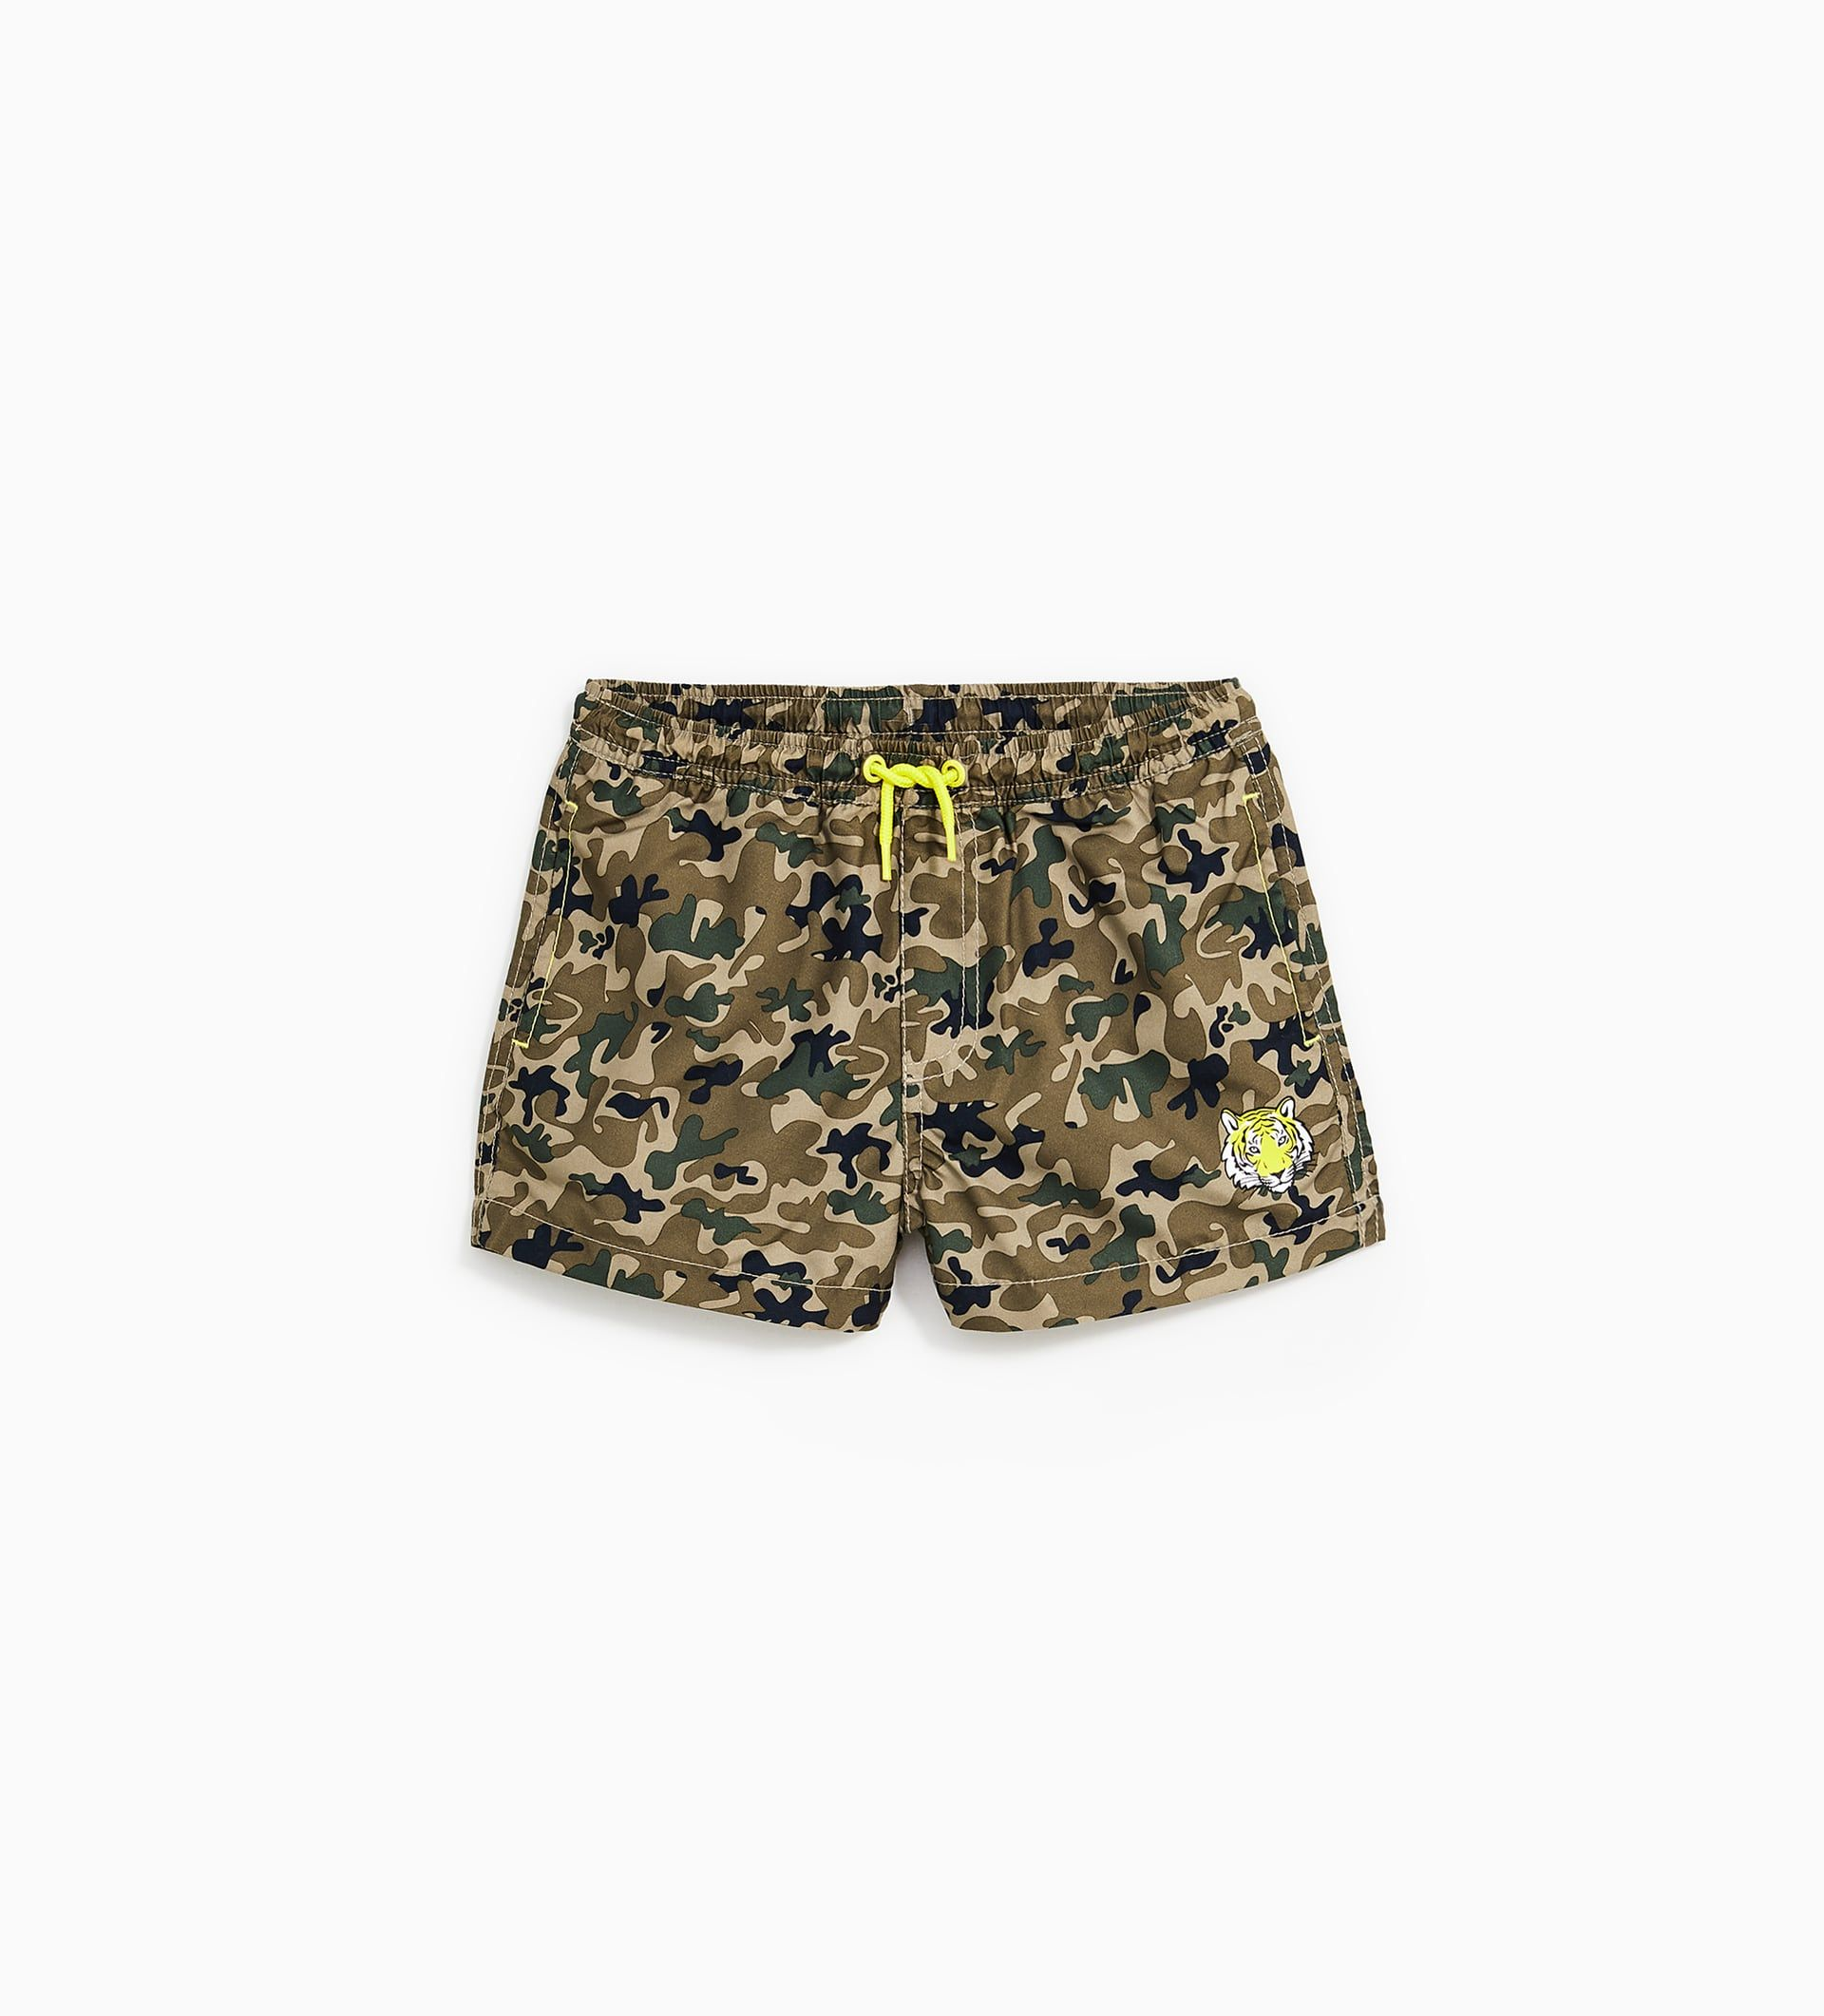 Image 1 Of Camouflage Bermuda Swimming Trunks With Tiger